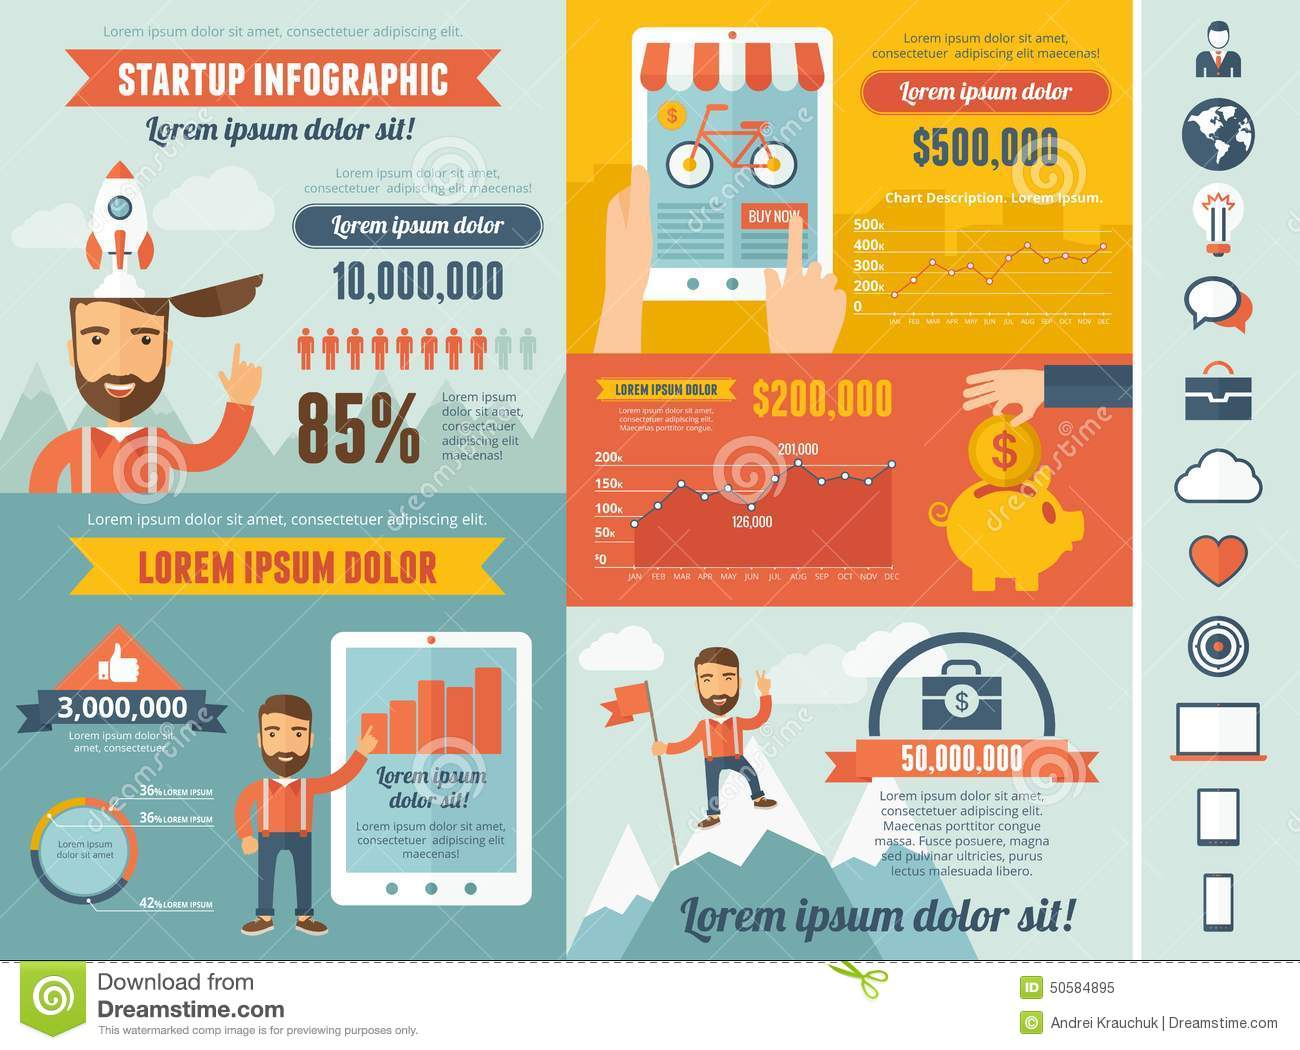 Startup Infographic Template Stock Vector  Image 50584895. Missouri Wic Income Guidelines. Masters In Education Colorado. Personal Injury Attorney Charlottesville. Hard Money Loan Rates California. Jillian Michaels Detox Drink. New Homes Scottsdale Az Area Trade Stocks. Car Accident Lawyer New Orleans. Dish Network Promotional Code